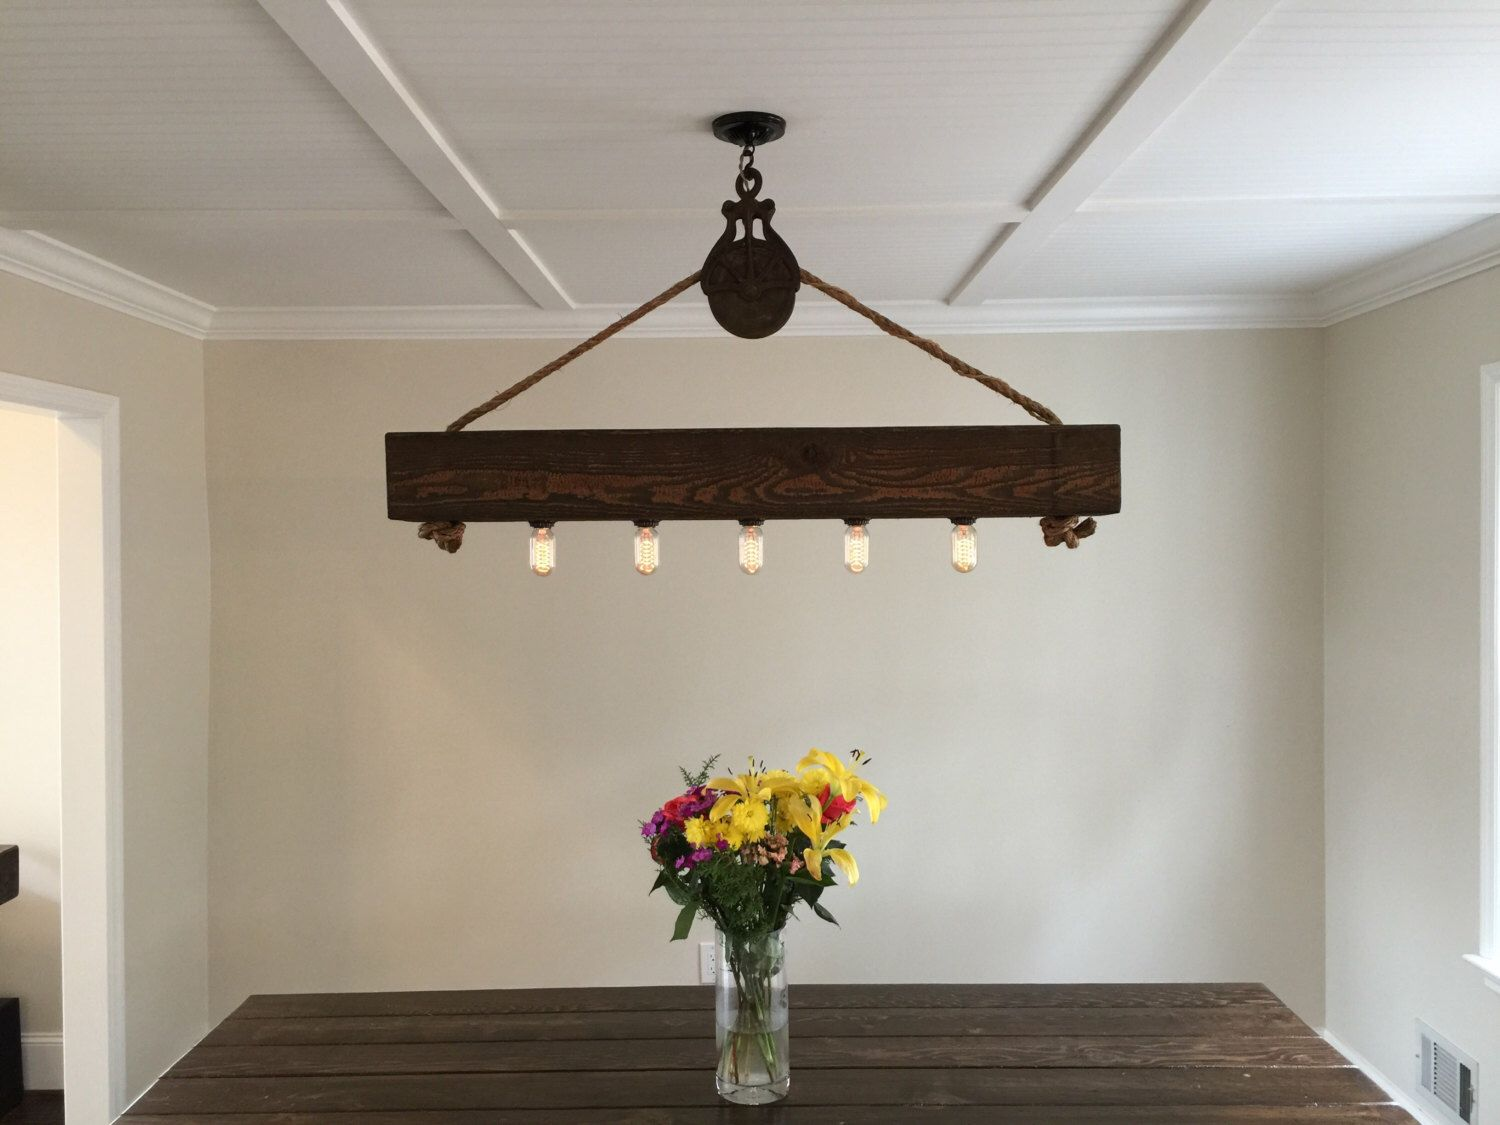 4 ft rustic beam edison bulb chandelier with vintage barn pulley by 4 ft rustic beam edison bulb chandelier with vintage barn pulley by handcraftedlighting on etsy https aloadofball Image collections